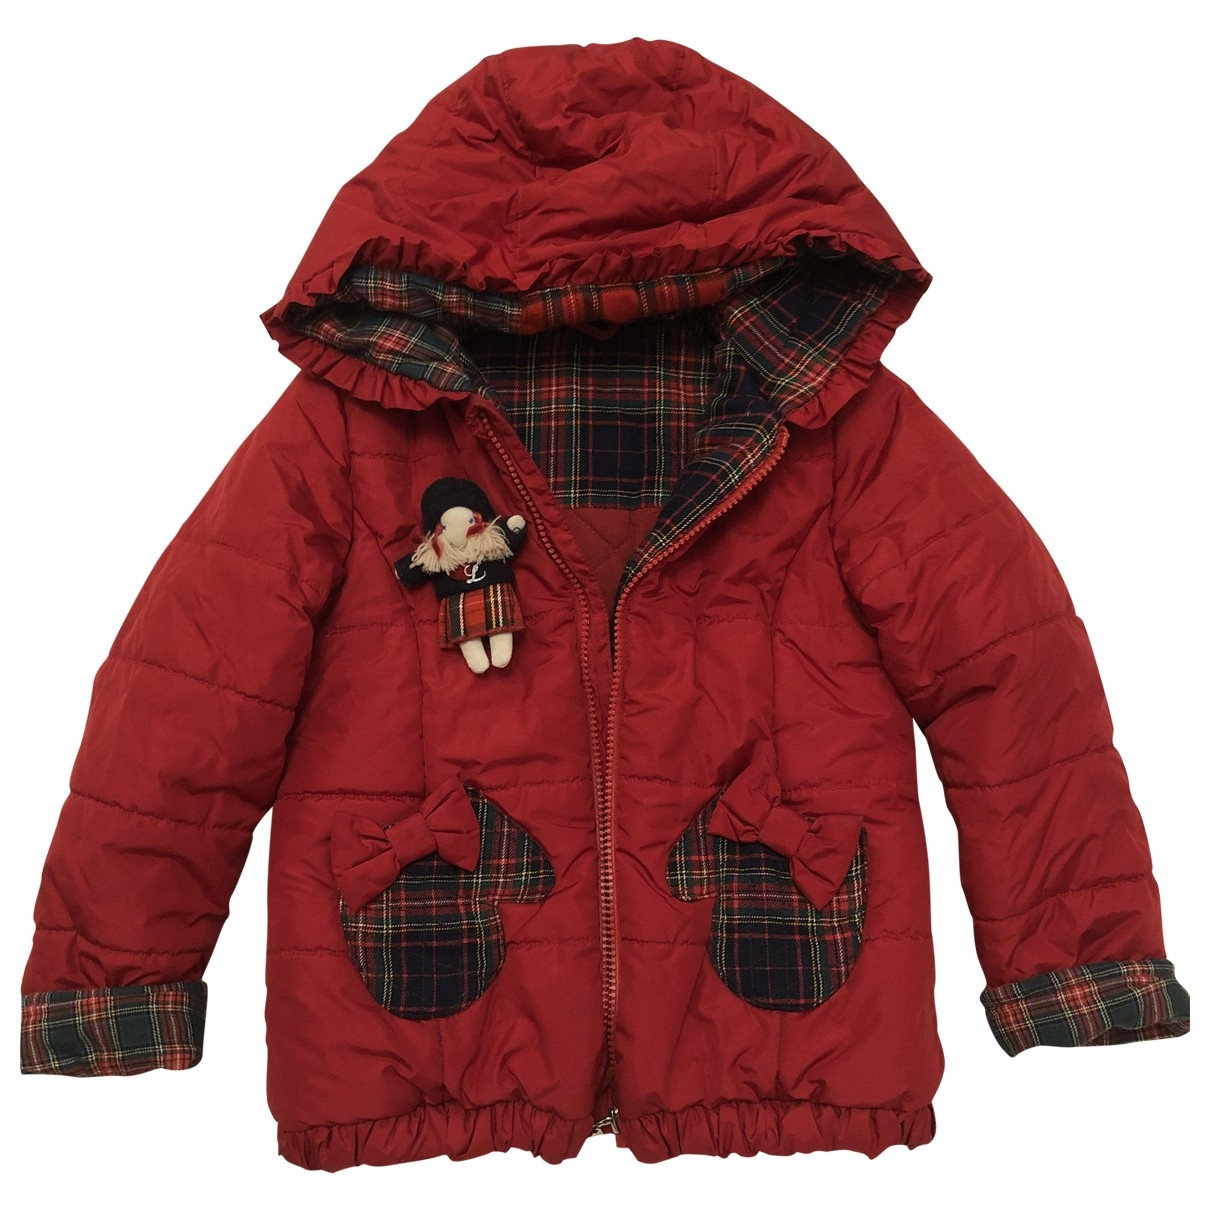 Lapin House \N Red Cotton jacket & coat for Kids 4 years - until 40 inches UK